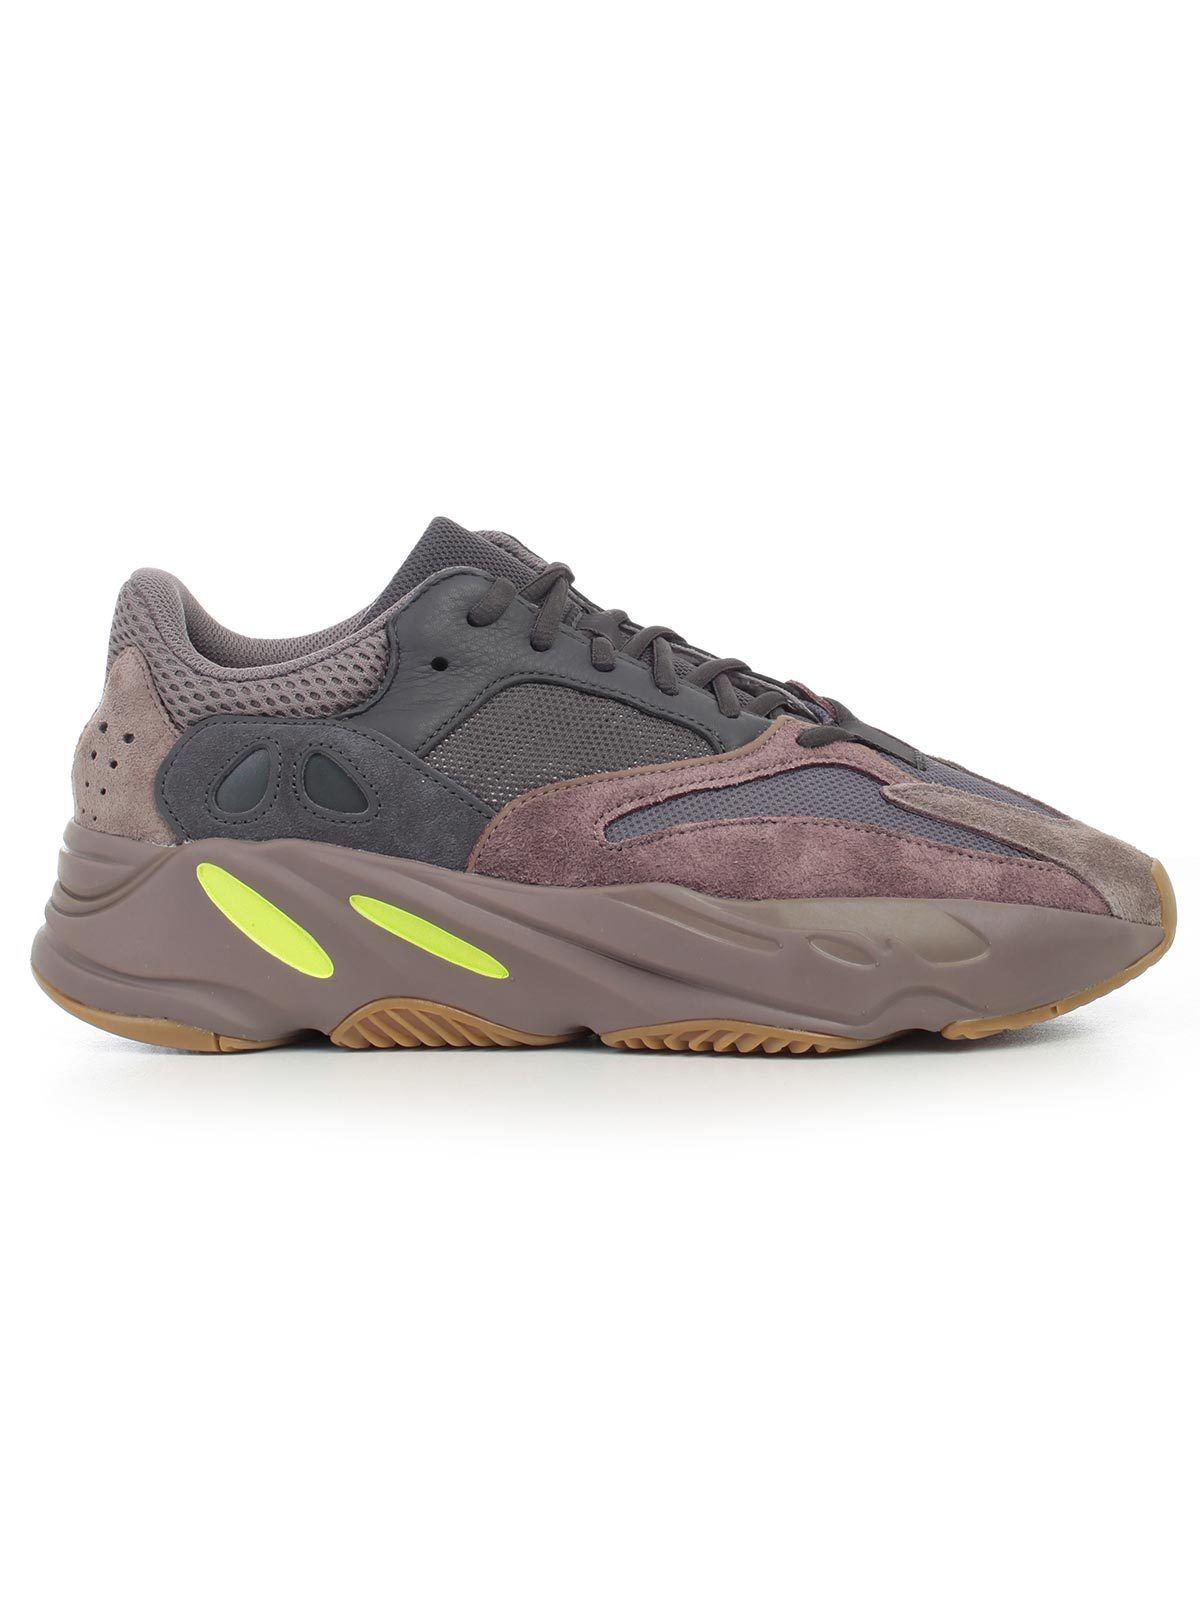 fc8afe3855745 YEEZY ADIDAS X YEEZY BOOST 700 MAUVE PANEL SNEAKERS.  yeezy  shoes ...